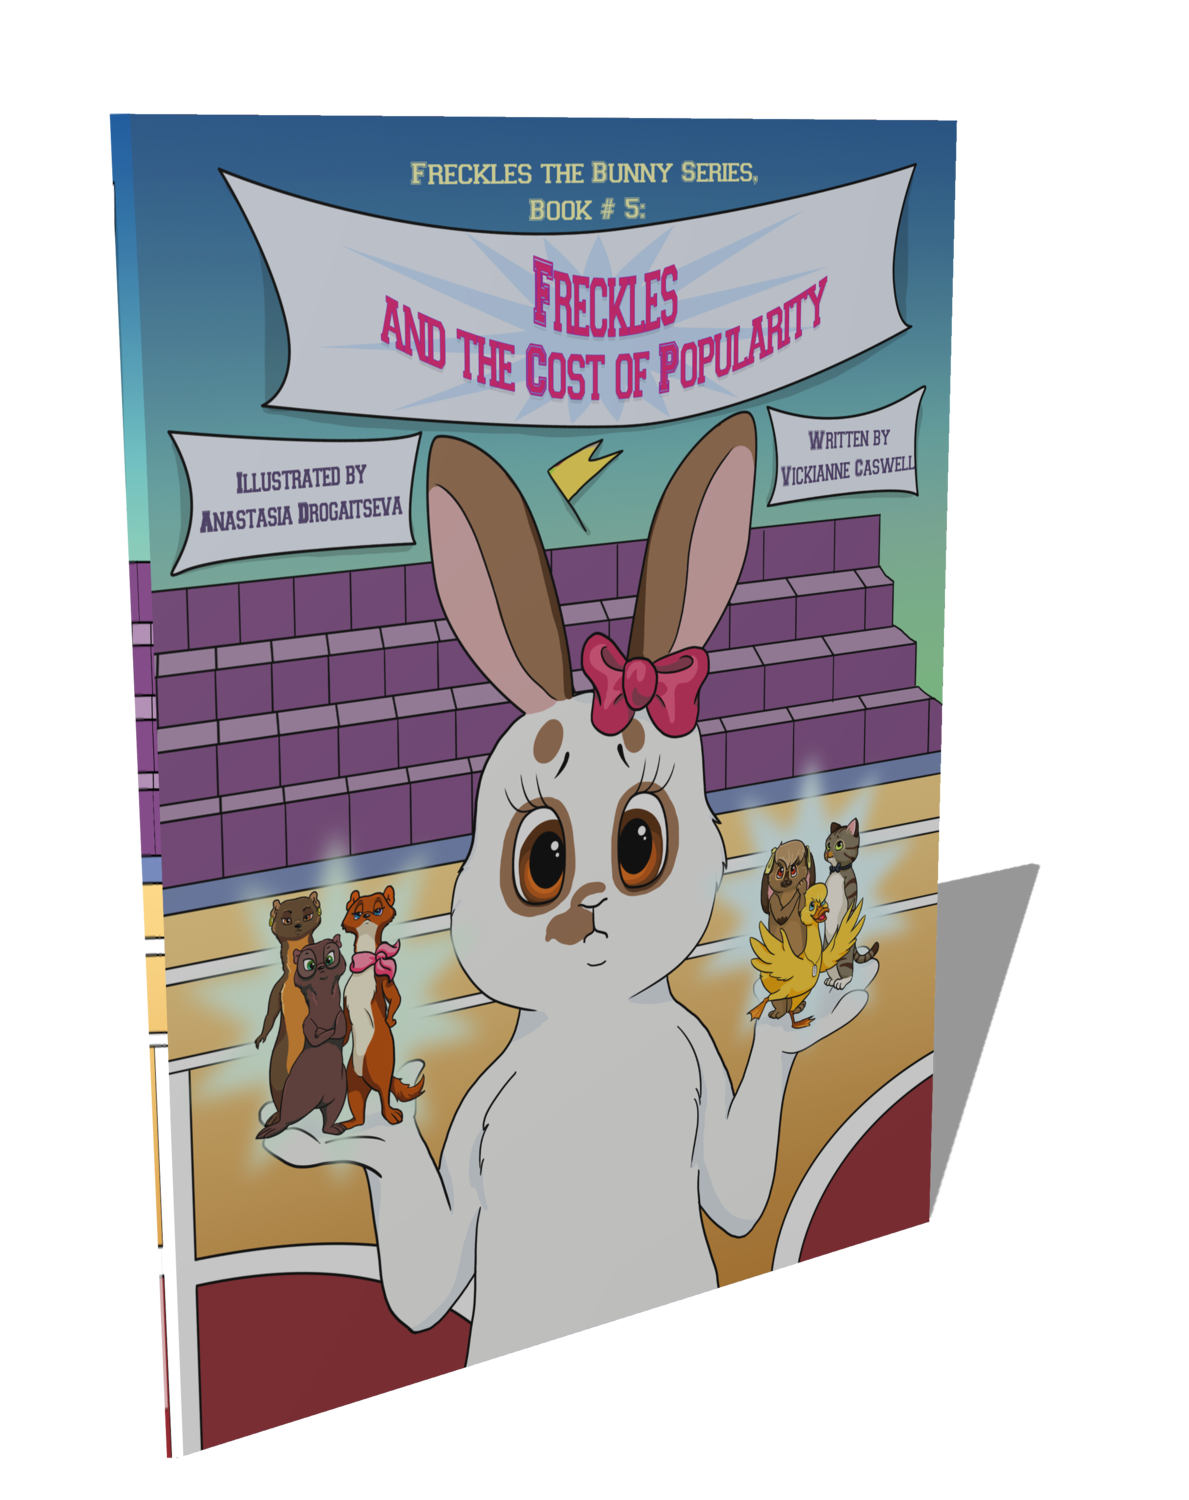 Freckles and the Cost of Popularity (Freckles the Bunny Series # 5)